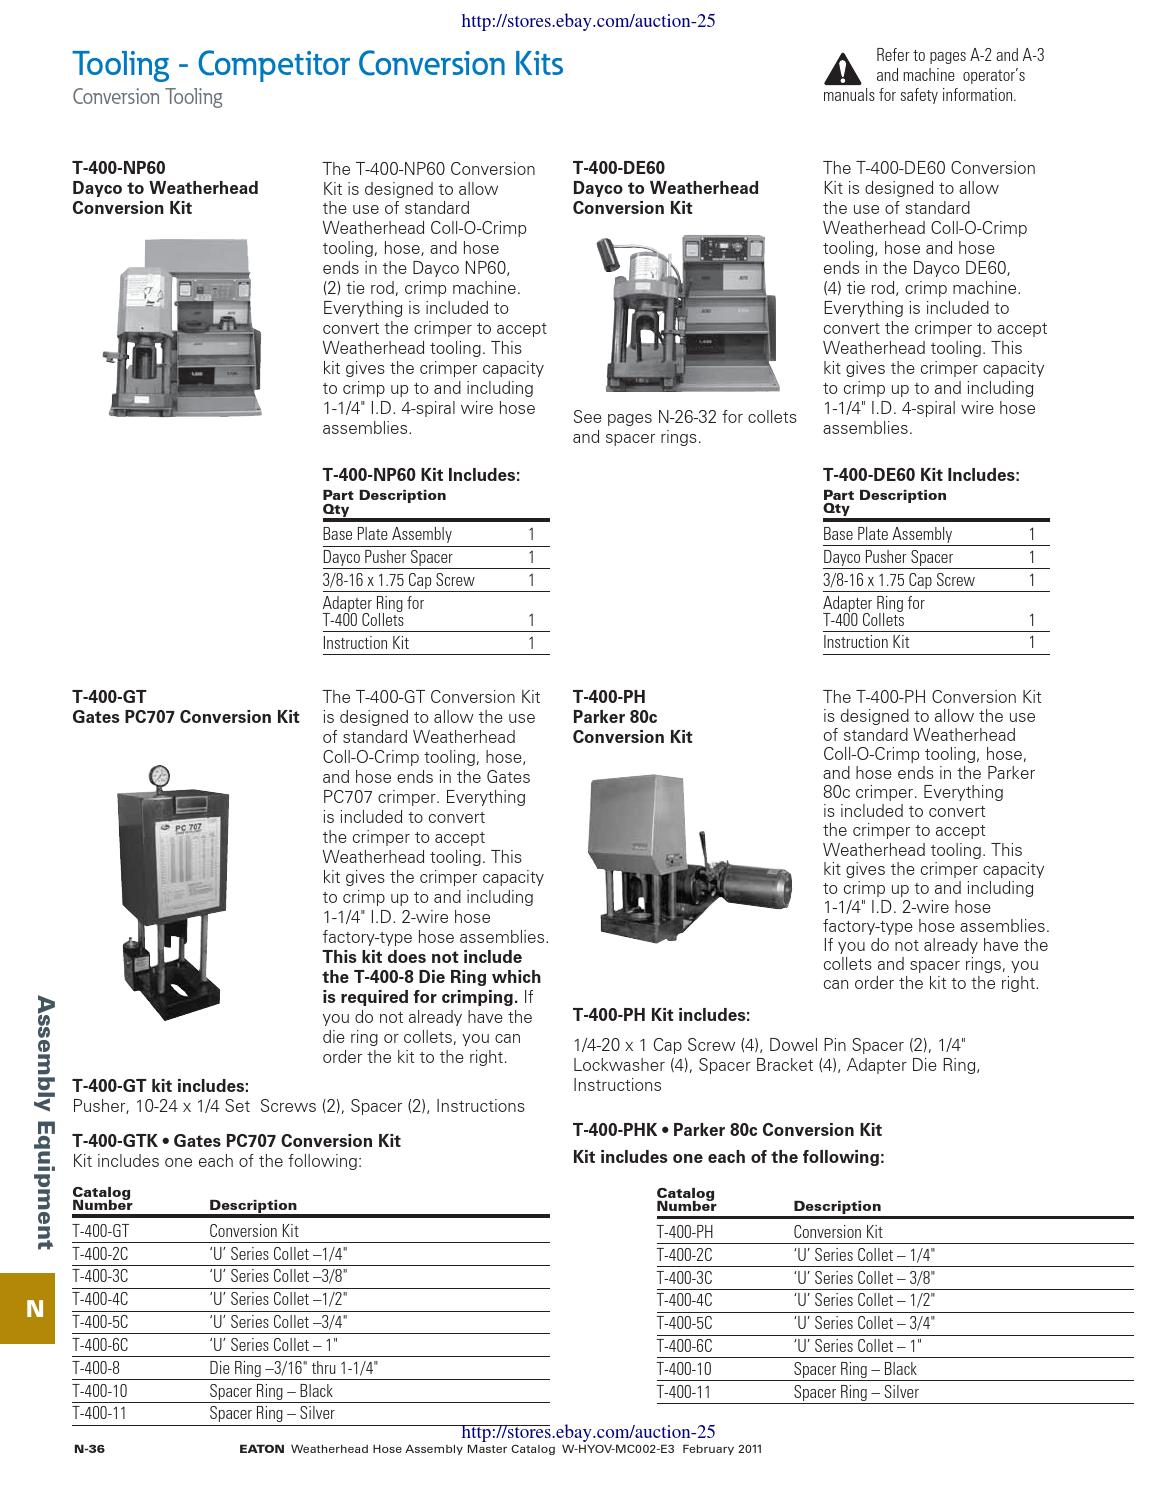 Eaton weatherhead catalog pdf auction 25 final 499 by Adapters Incorporated  - issuu